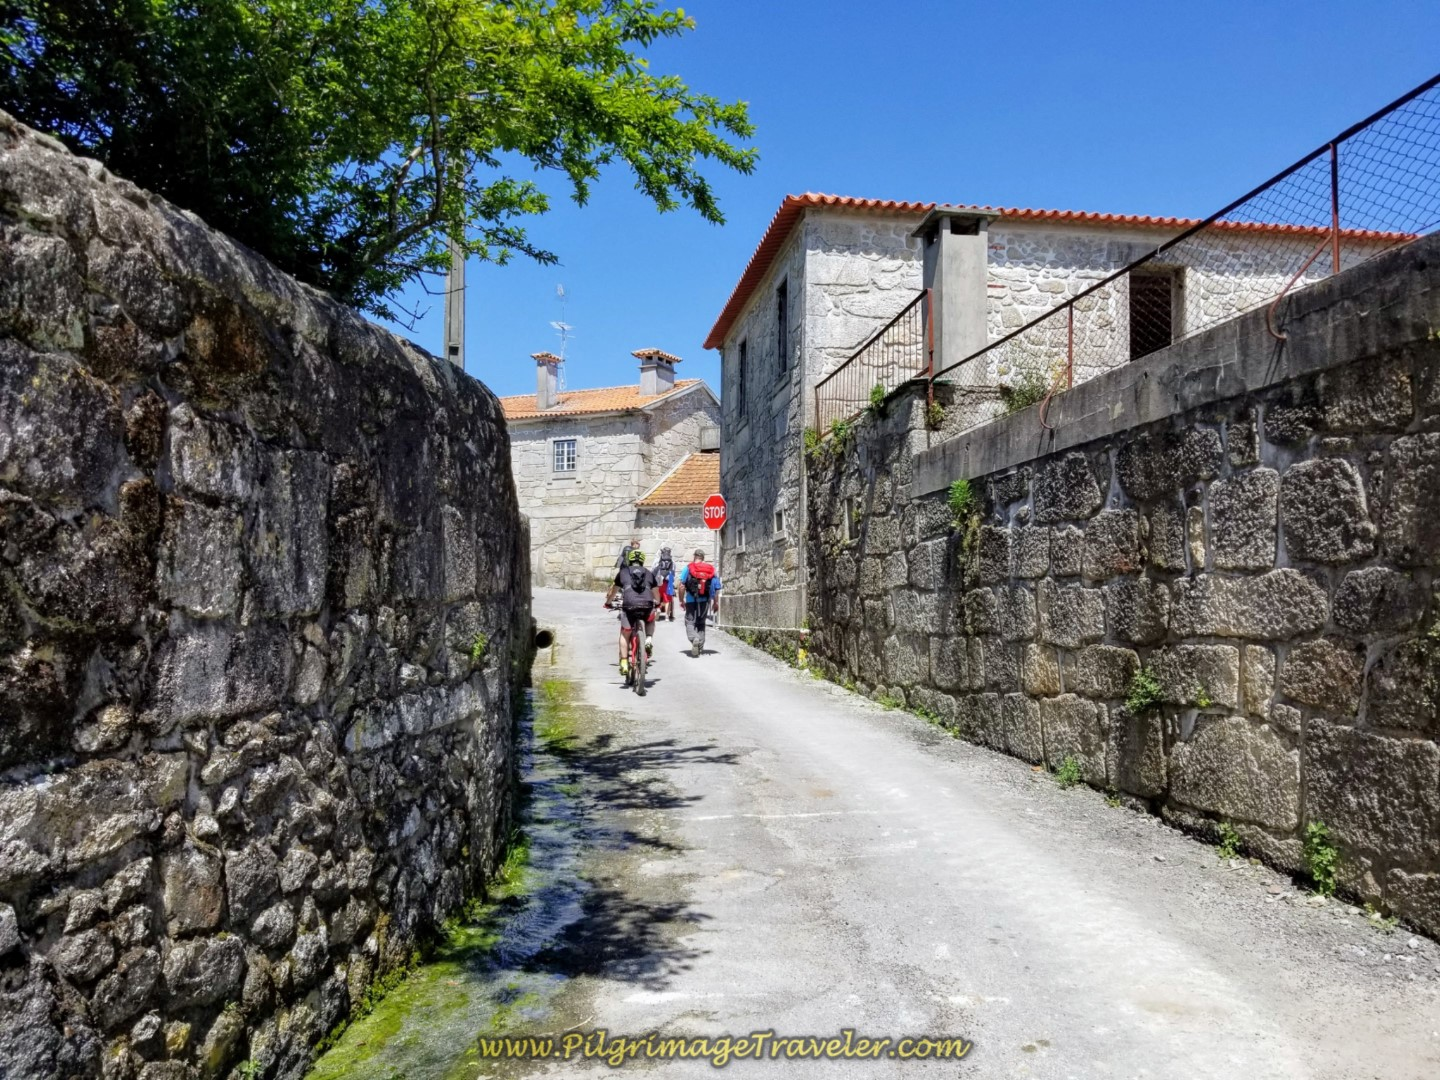 Entering the Town of Pedra Furada on day sixteen on the Central Route of the Portuguese Way